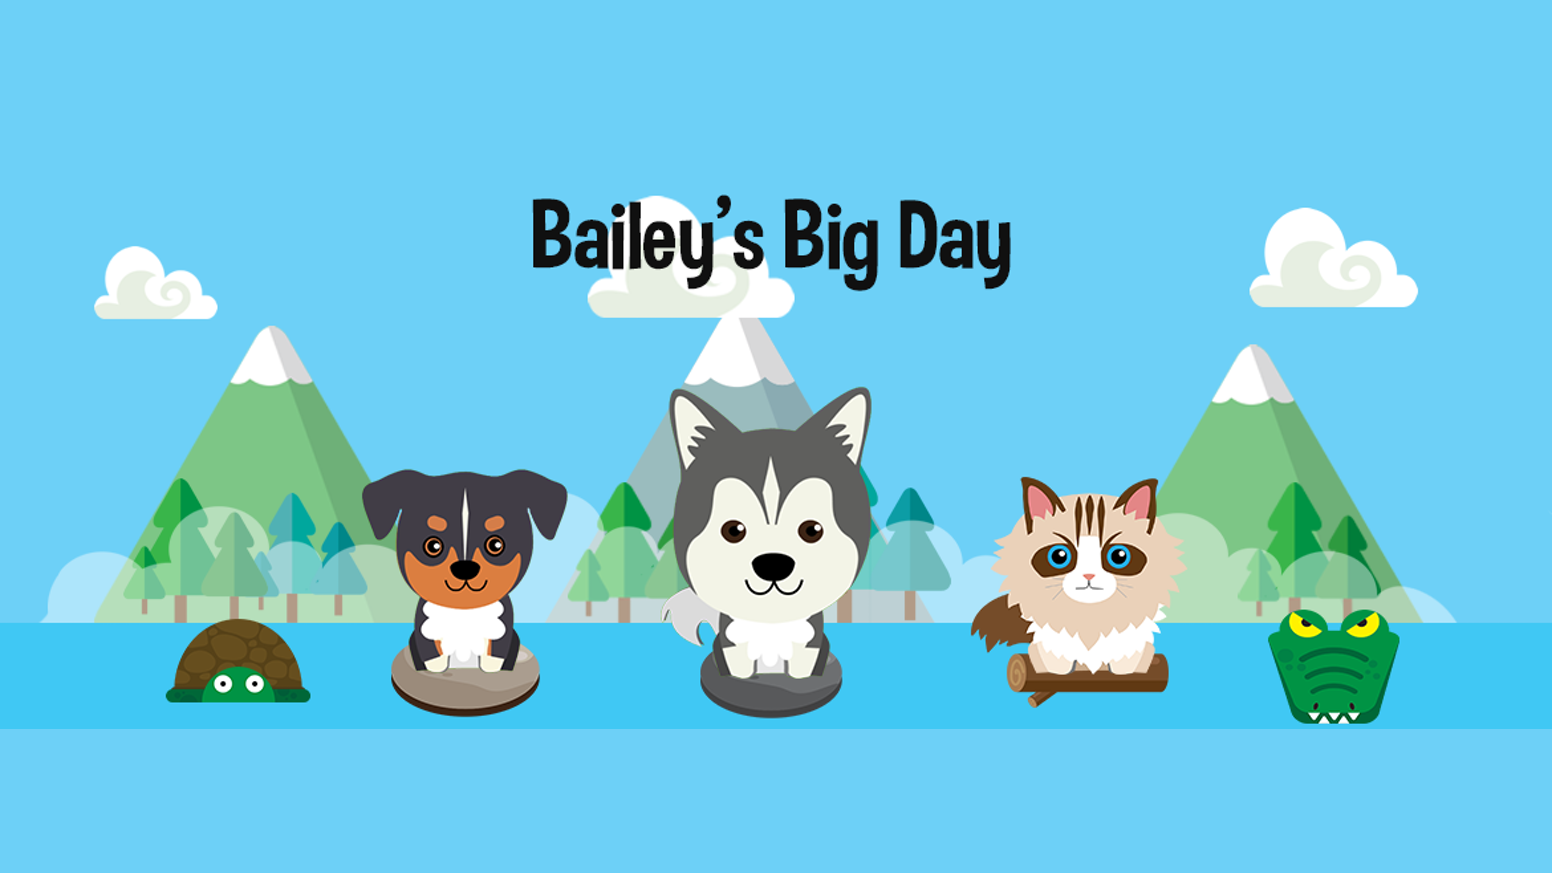 bailey s big day by mendie leelin kickstarter join bailey friends in this adorable dream adventure filled thrills excitement and fun